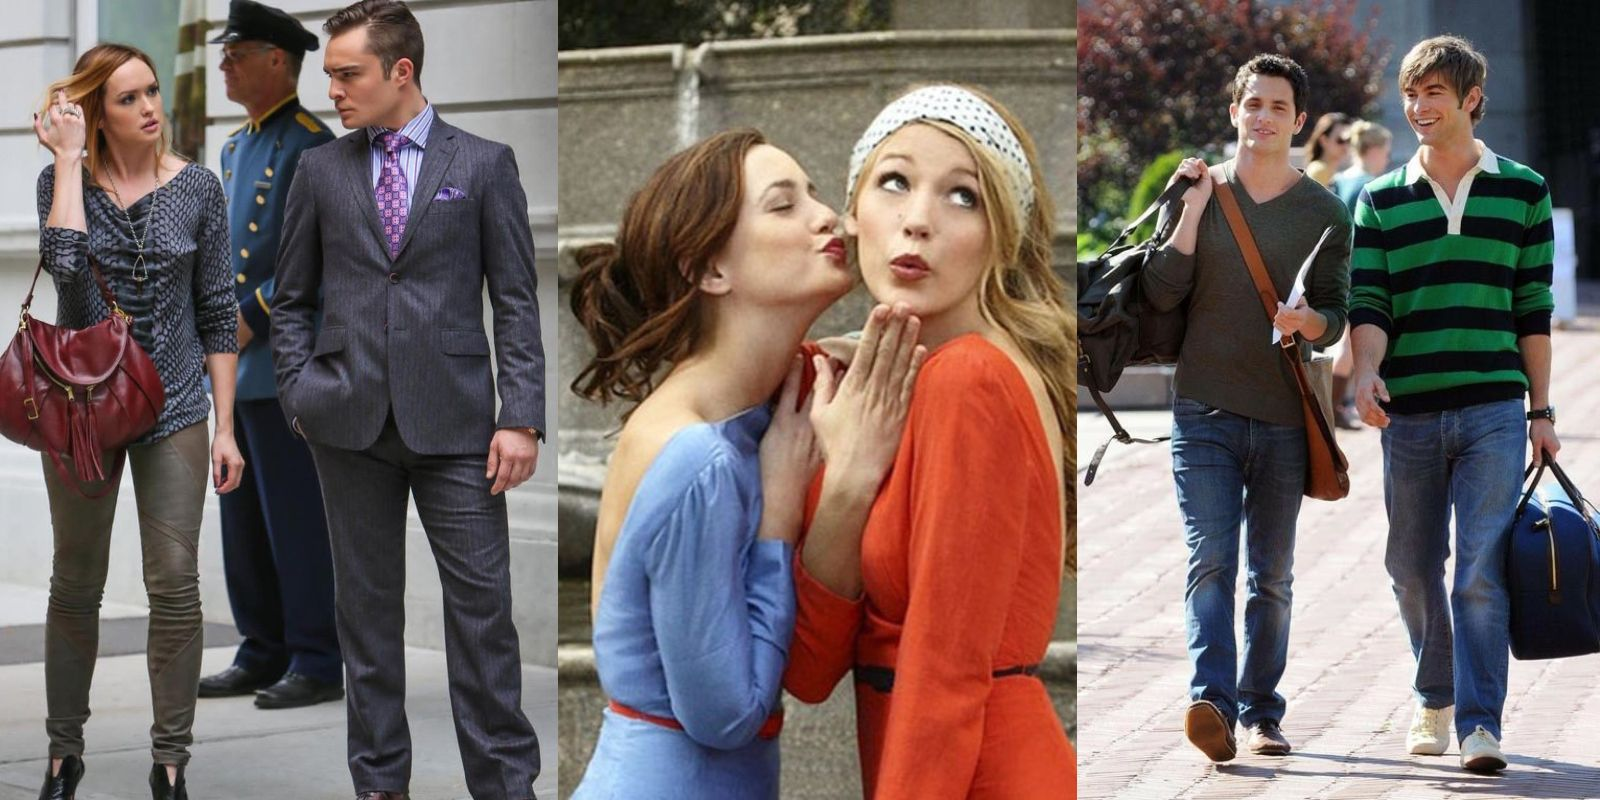 Gossip Girl: 10 Things You Never Noticed About The First